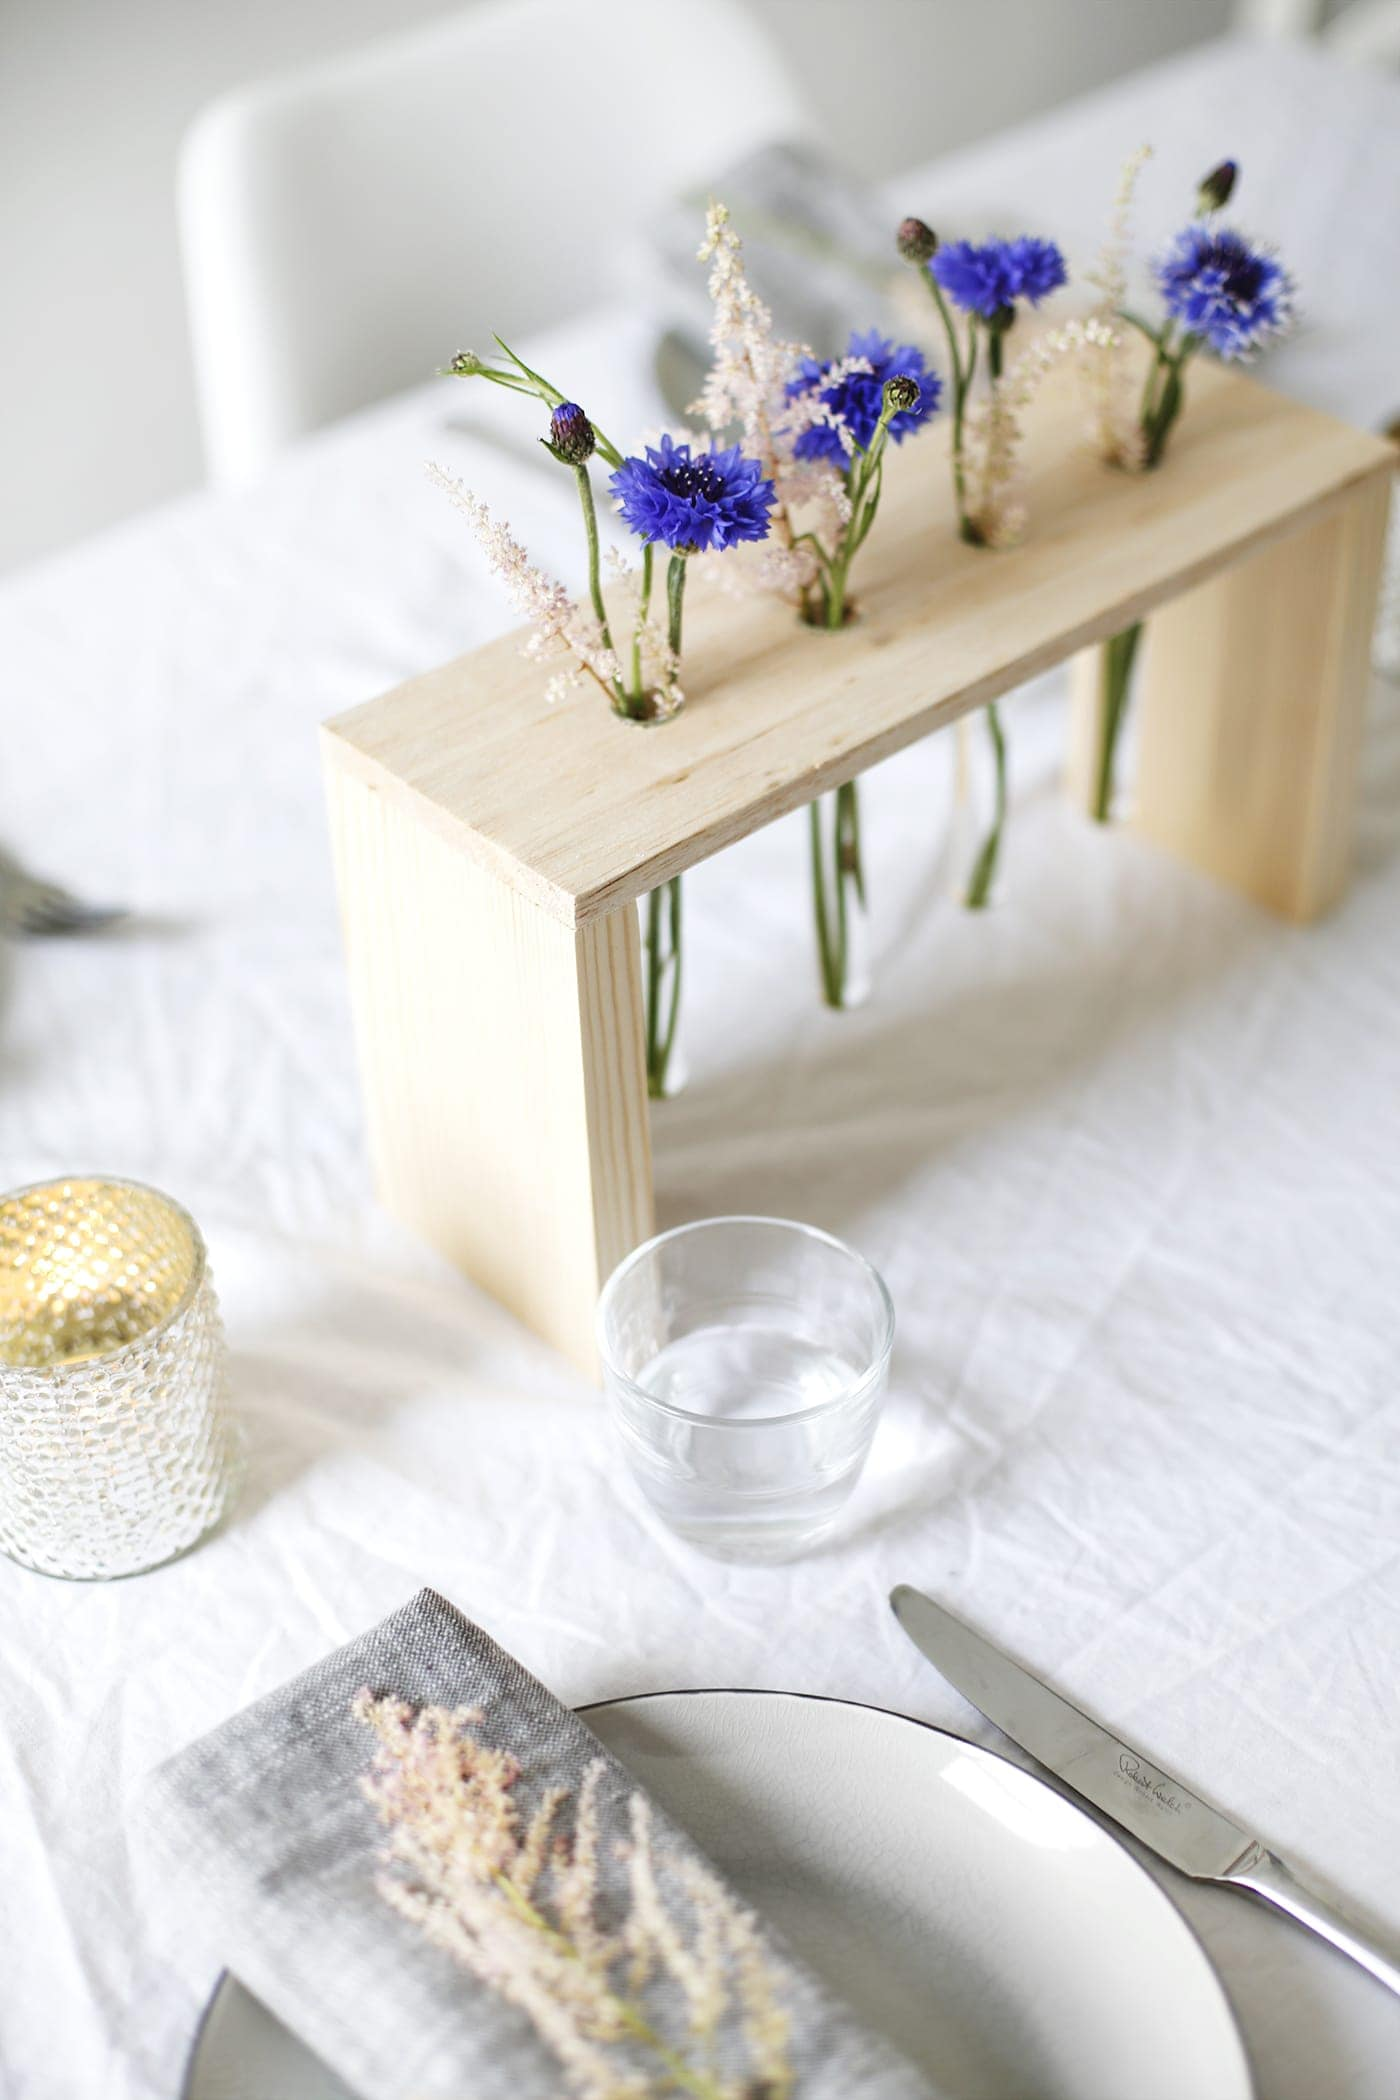 DIY floral table centre made with wood and test tubes | easy craft tutorial perfect for entertaining | home tutorial ideas